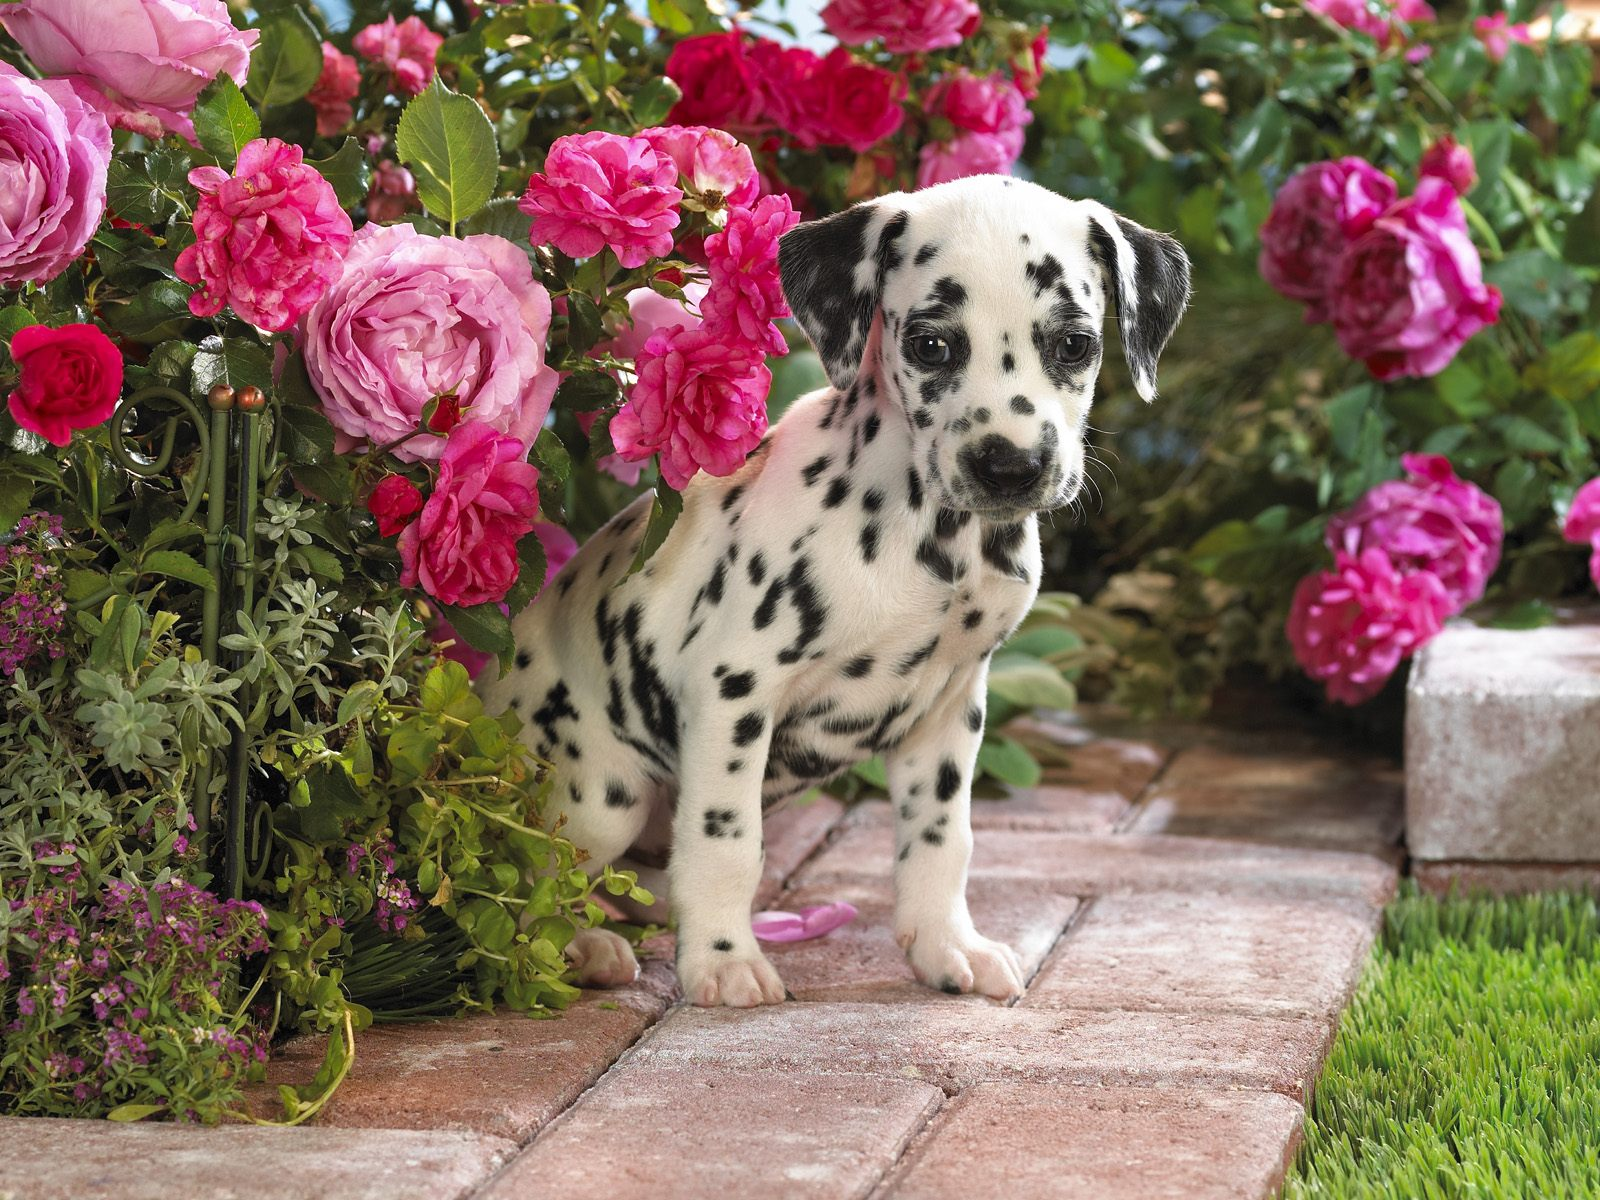 Cute Dalmatian Puppies   5 Wallpapers Download Wallpapers in HD 1600x1200